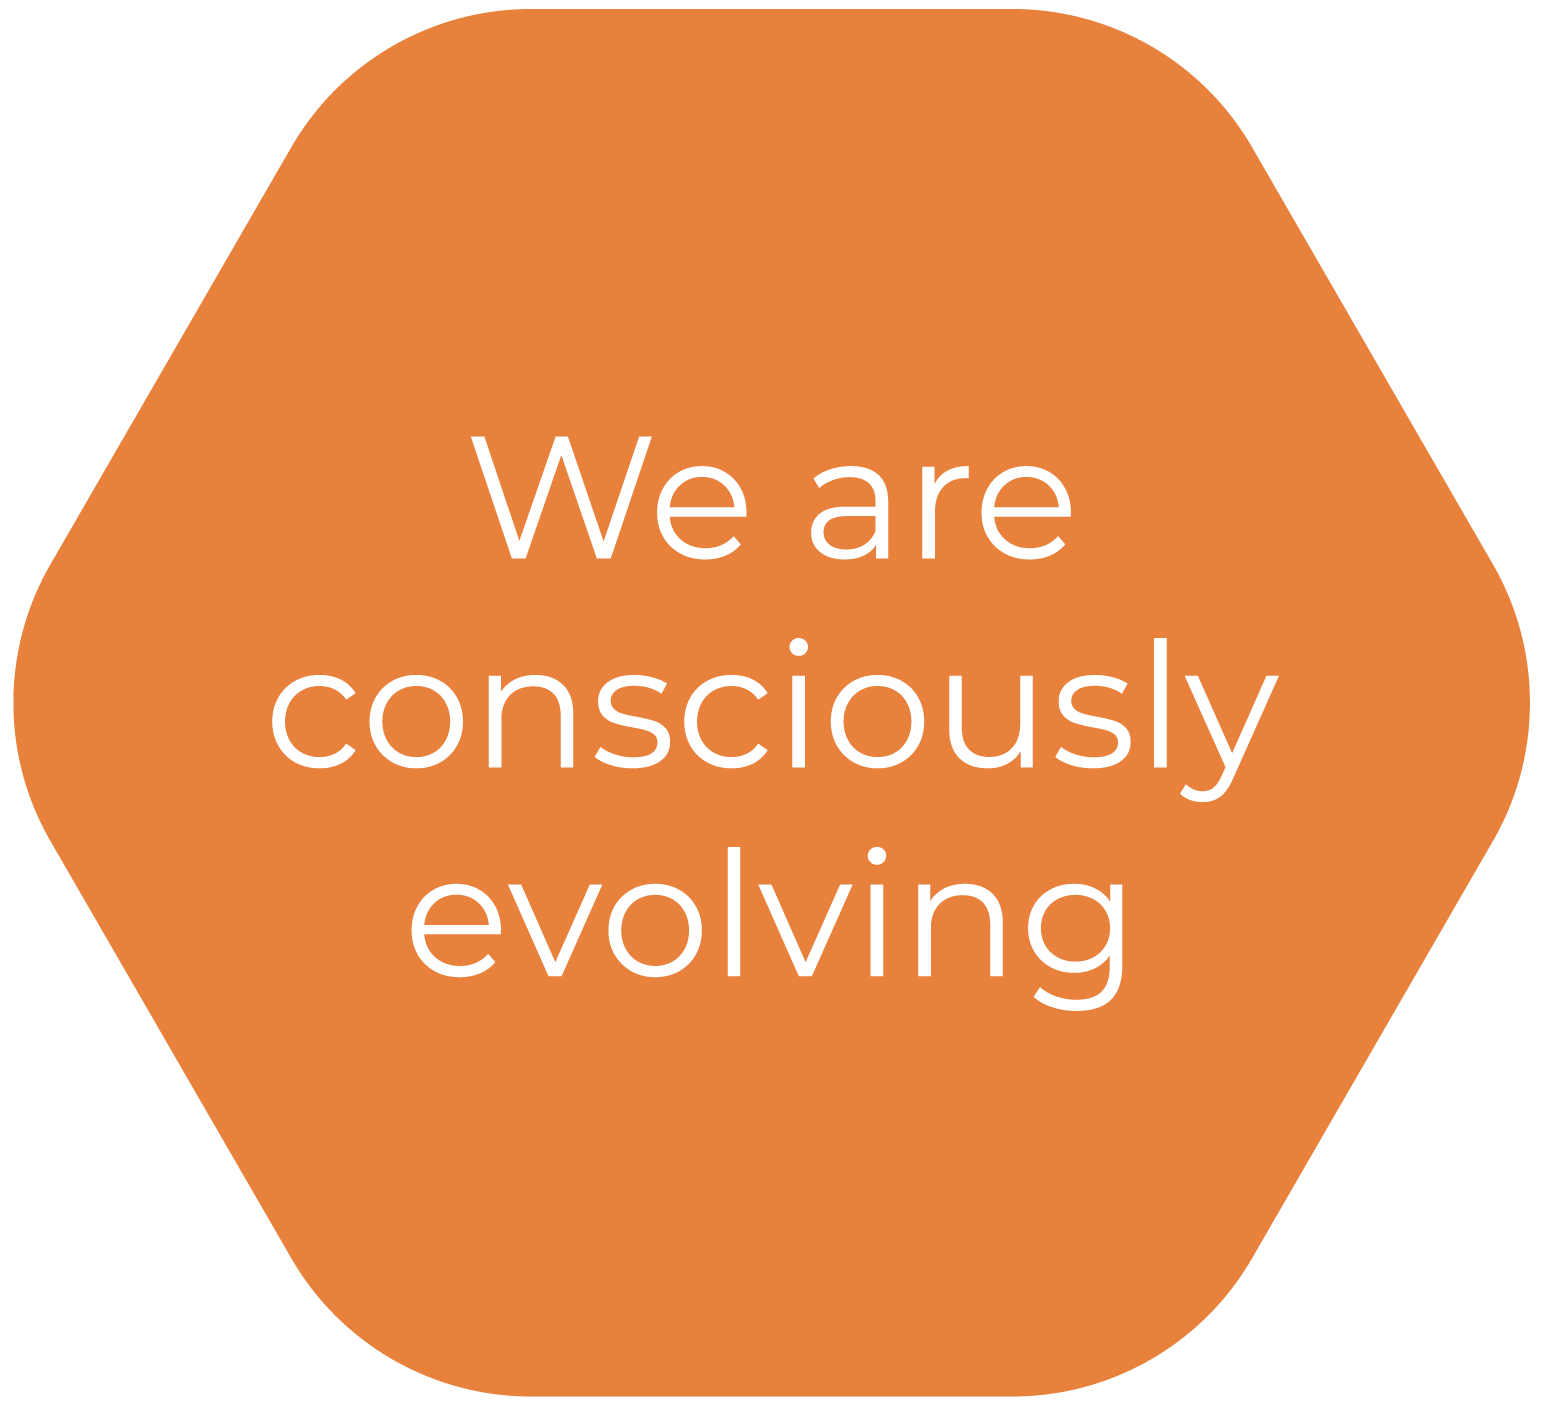 We are consciously evolving